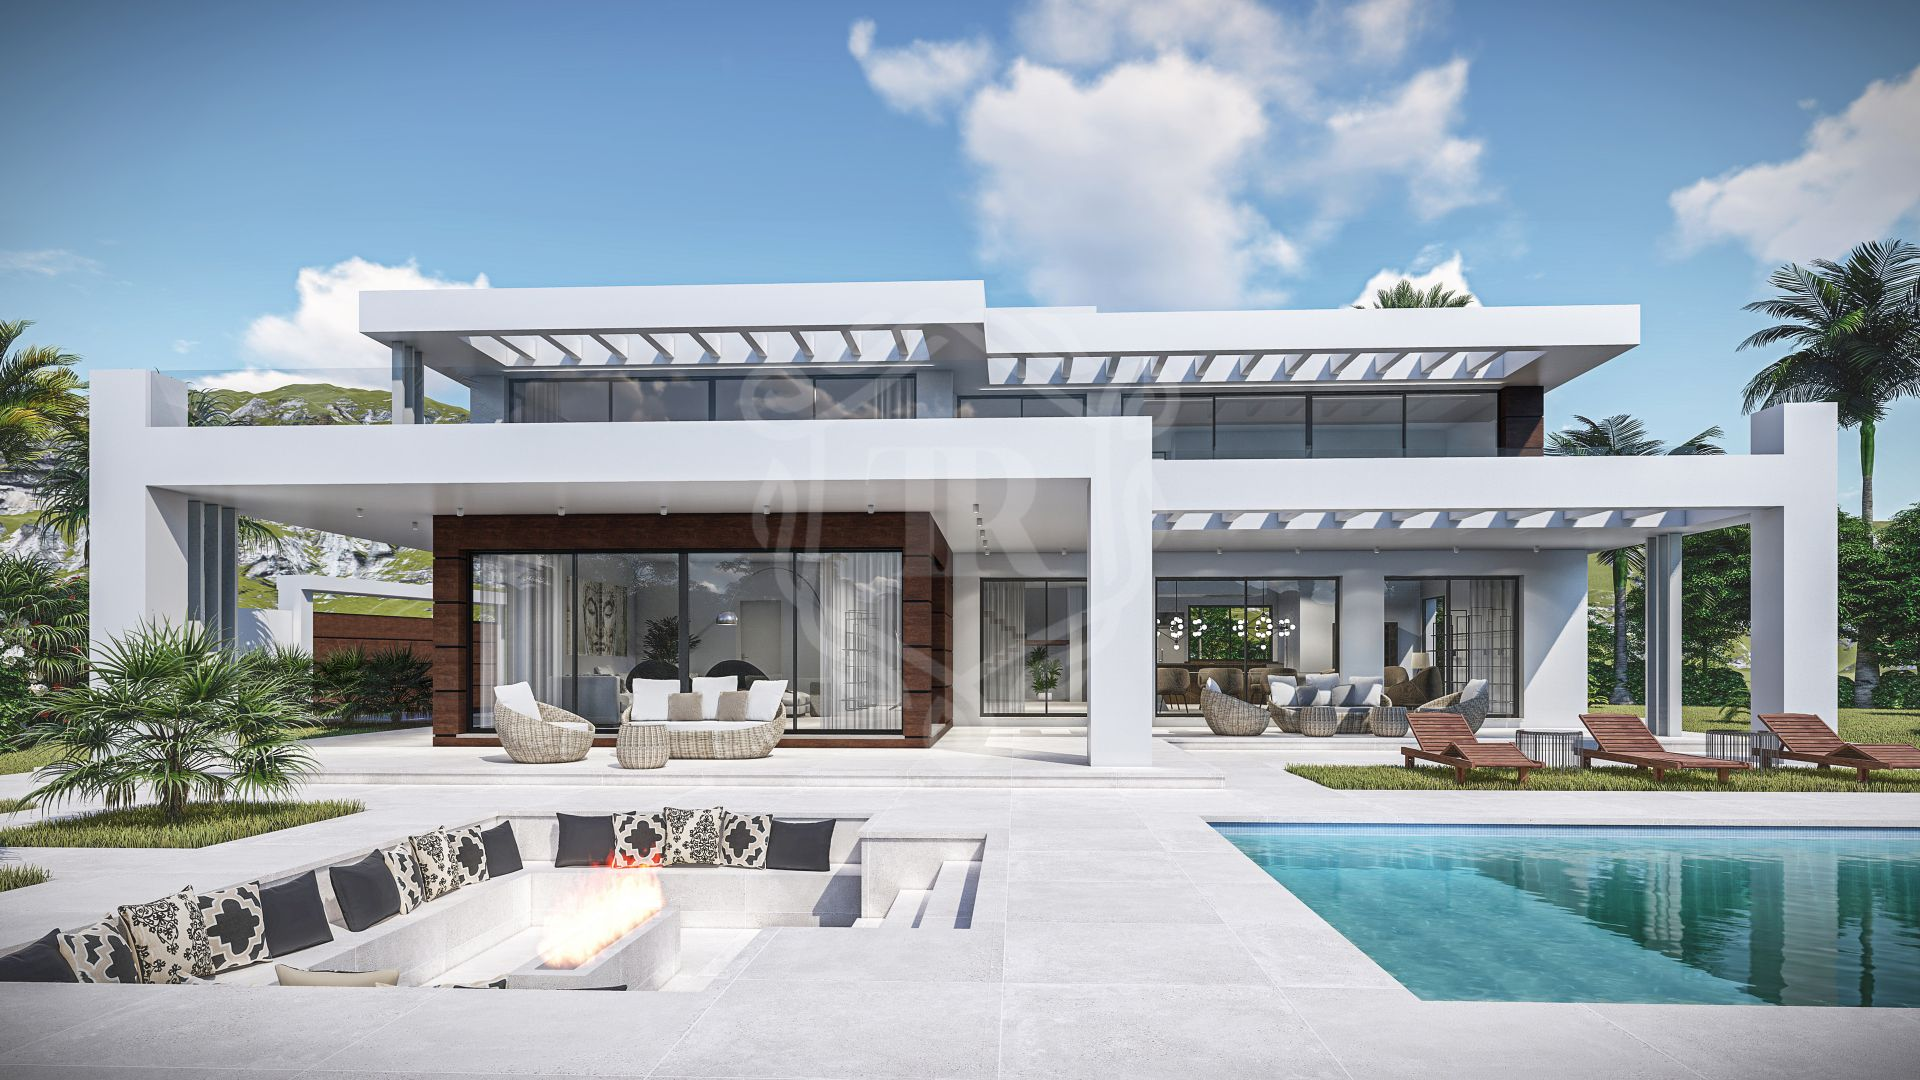 Completely renovated modern and luxury villa in Las Chapas